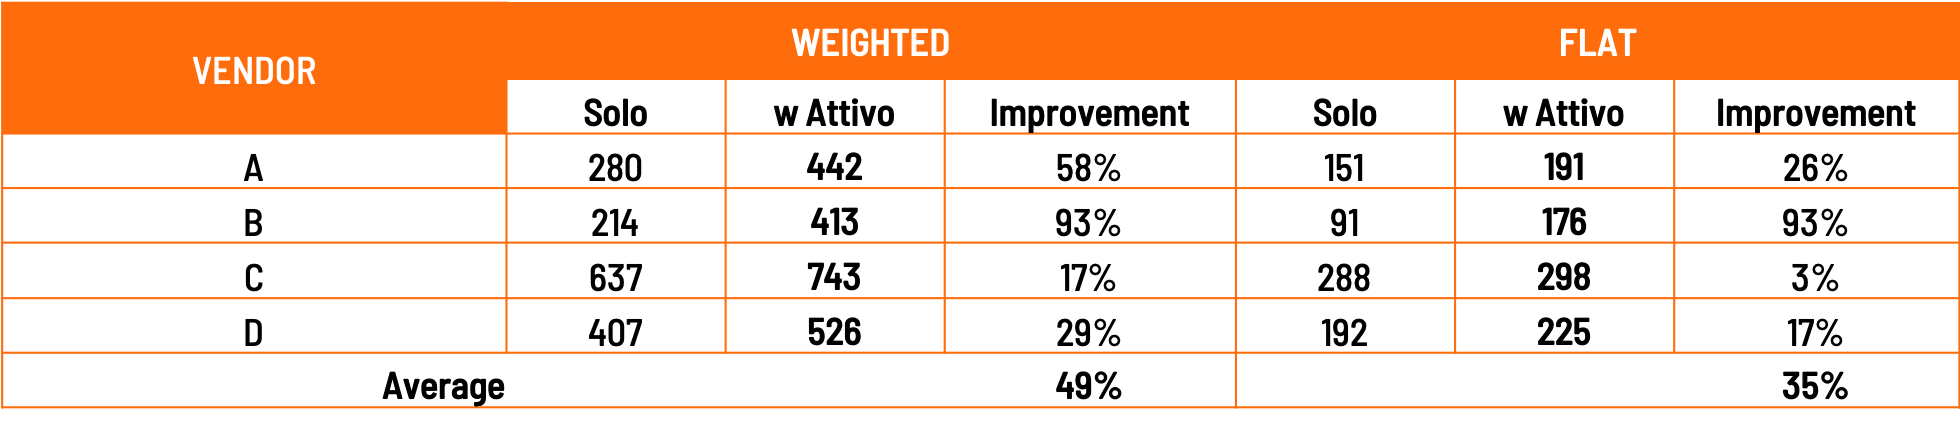 *Average improvement for combined scores.